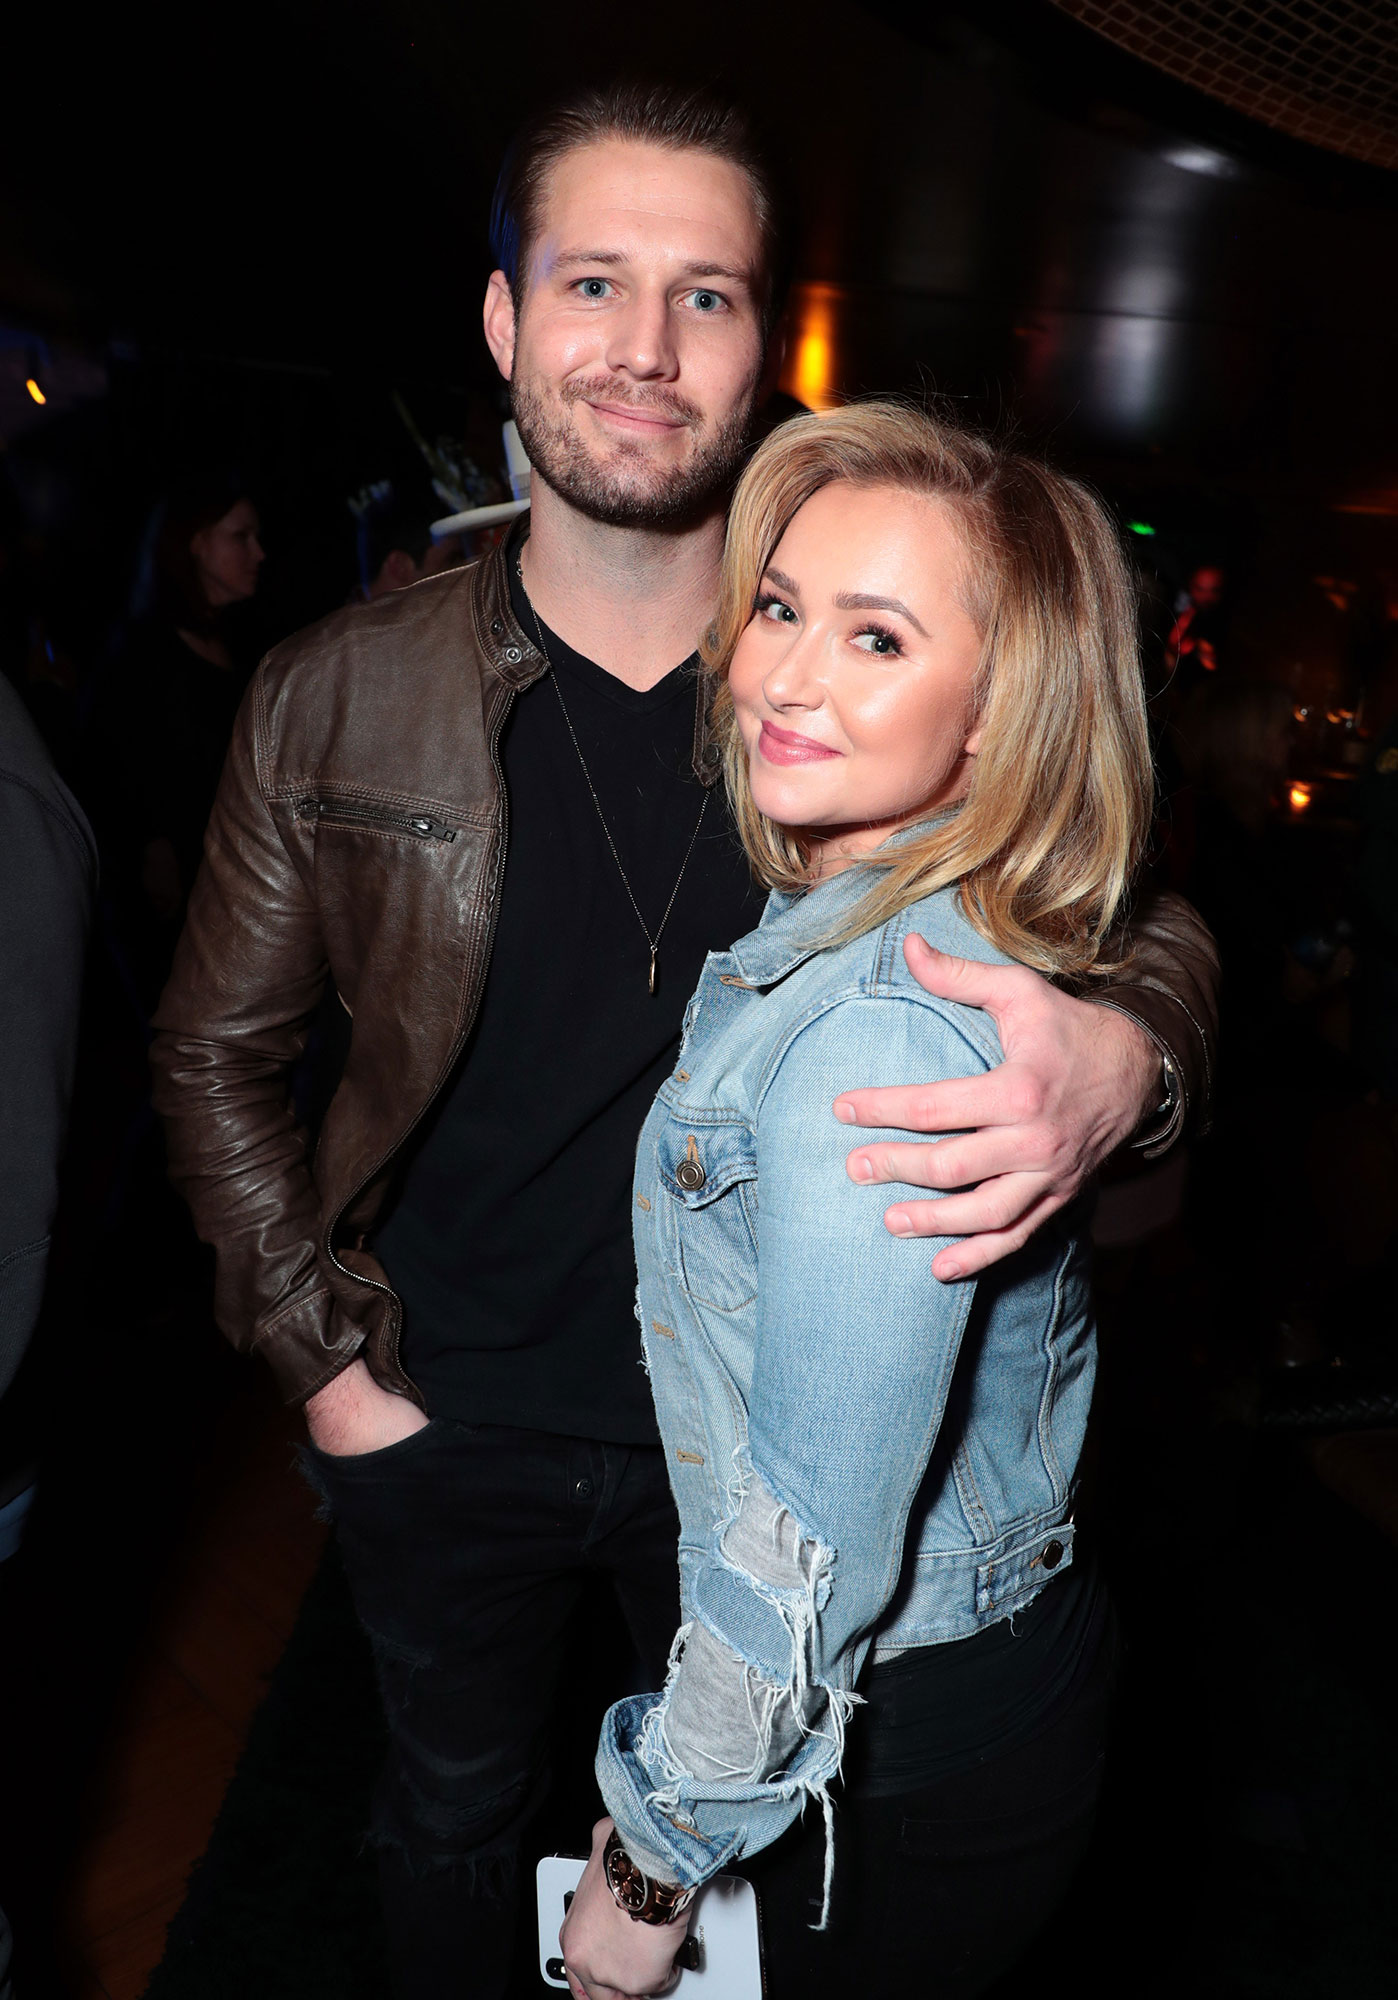 Hayden Panettiere's Boyfriend Could Face up to Four Years in Prison for Domestic Violence